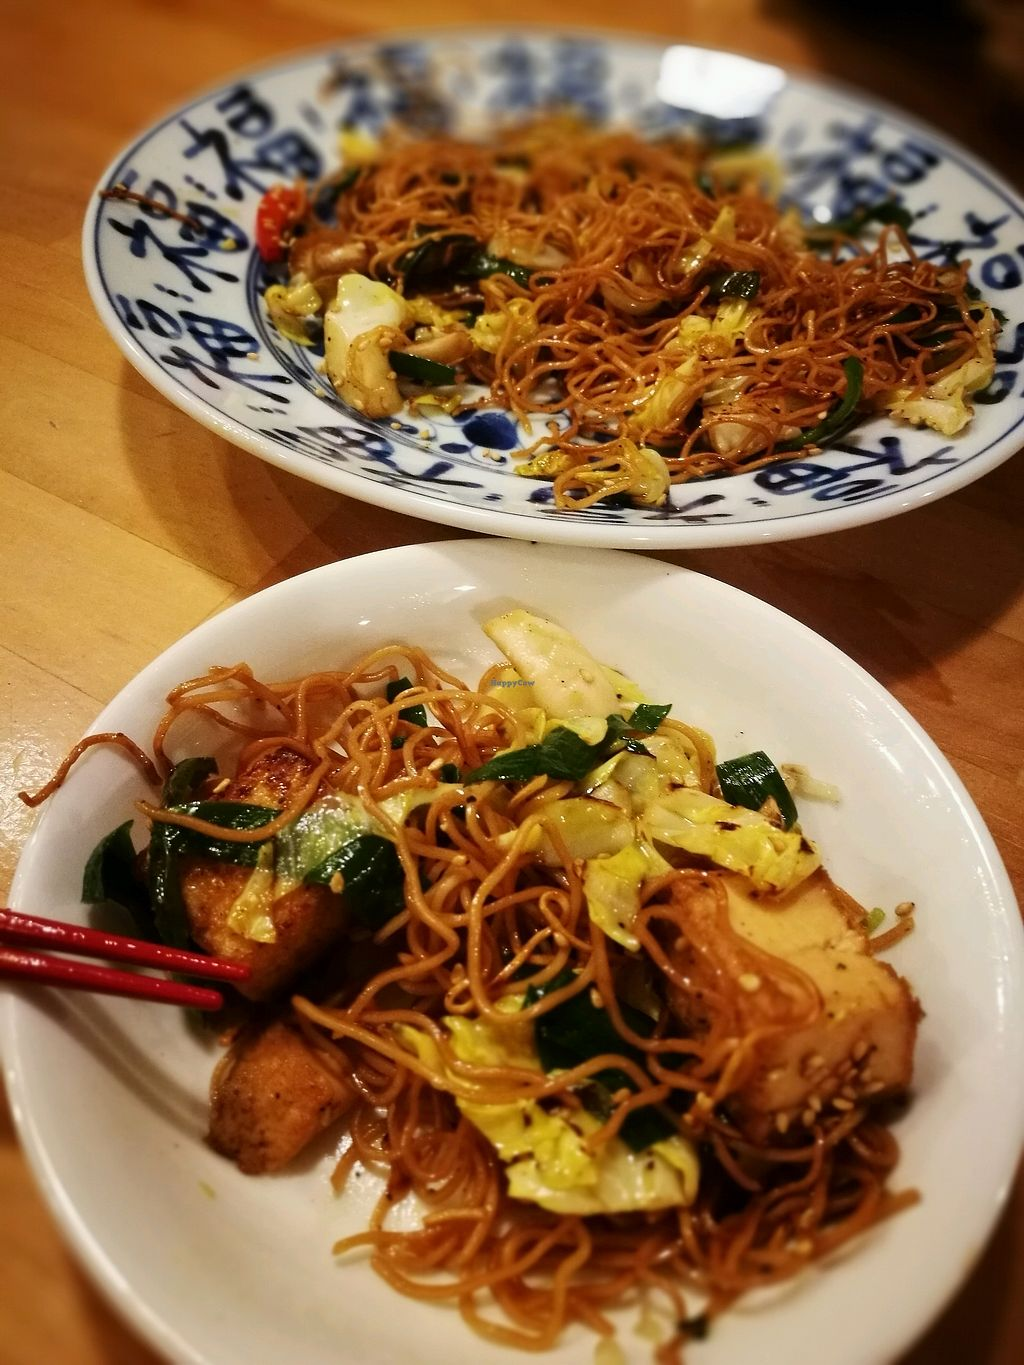 "Photo of Lo Fuo  by <a href=""/members/profile/hairymonkey"">hairymonkey</a> <br/>noodles with tofu (so good) <br/> March 13, 2018  - <a href='/contact/abuse/image/46161/370160'>Report</a>"